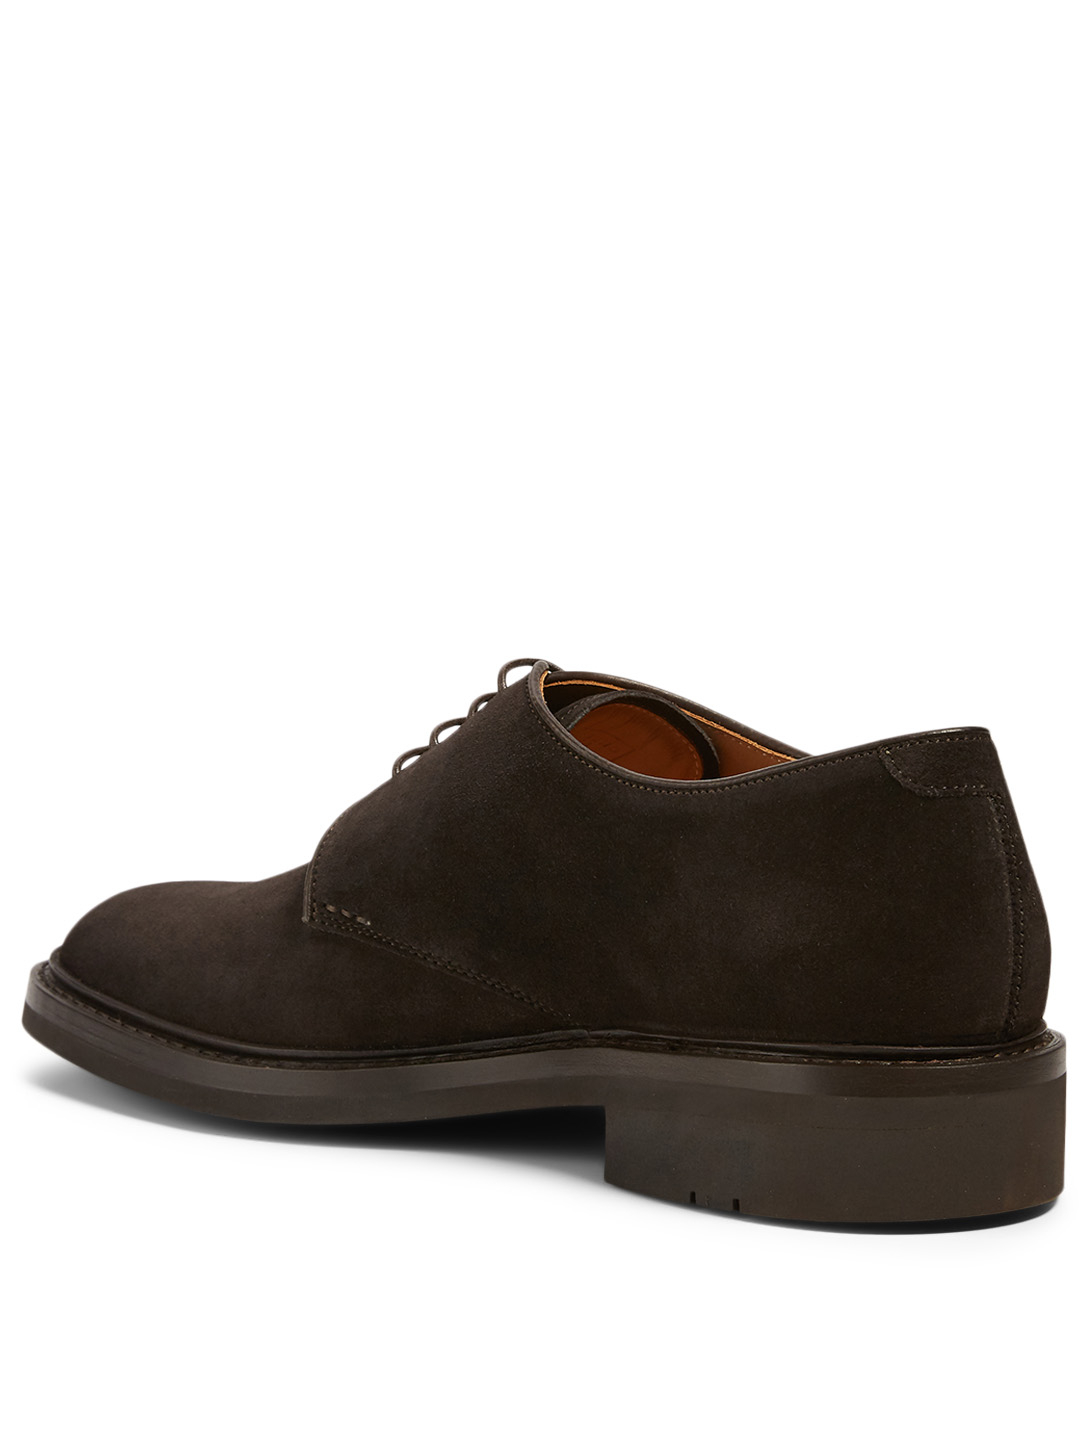 Fustet men's Derby in brown leather mounted on a Basalte sole